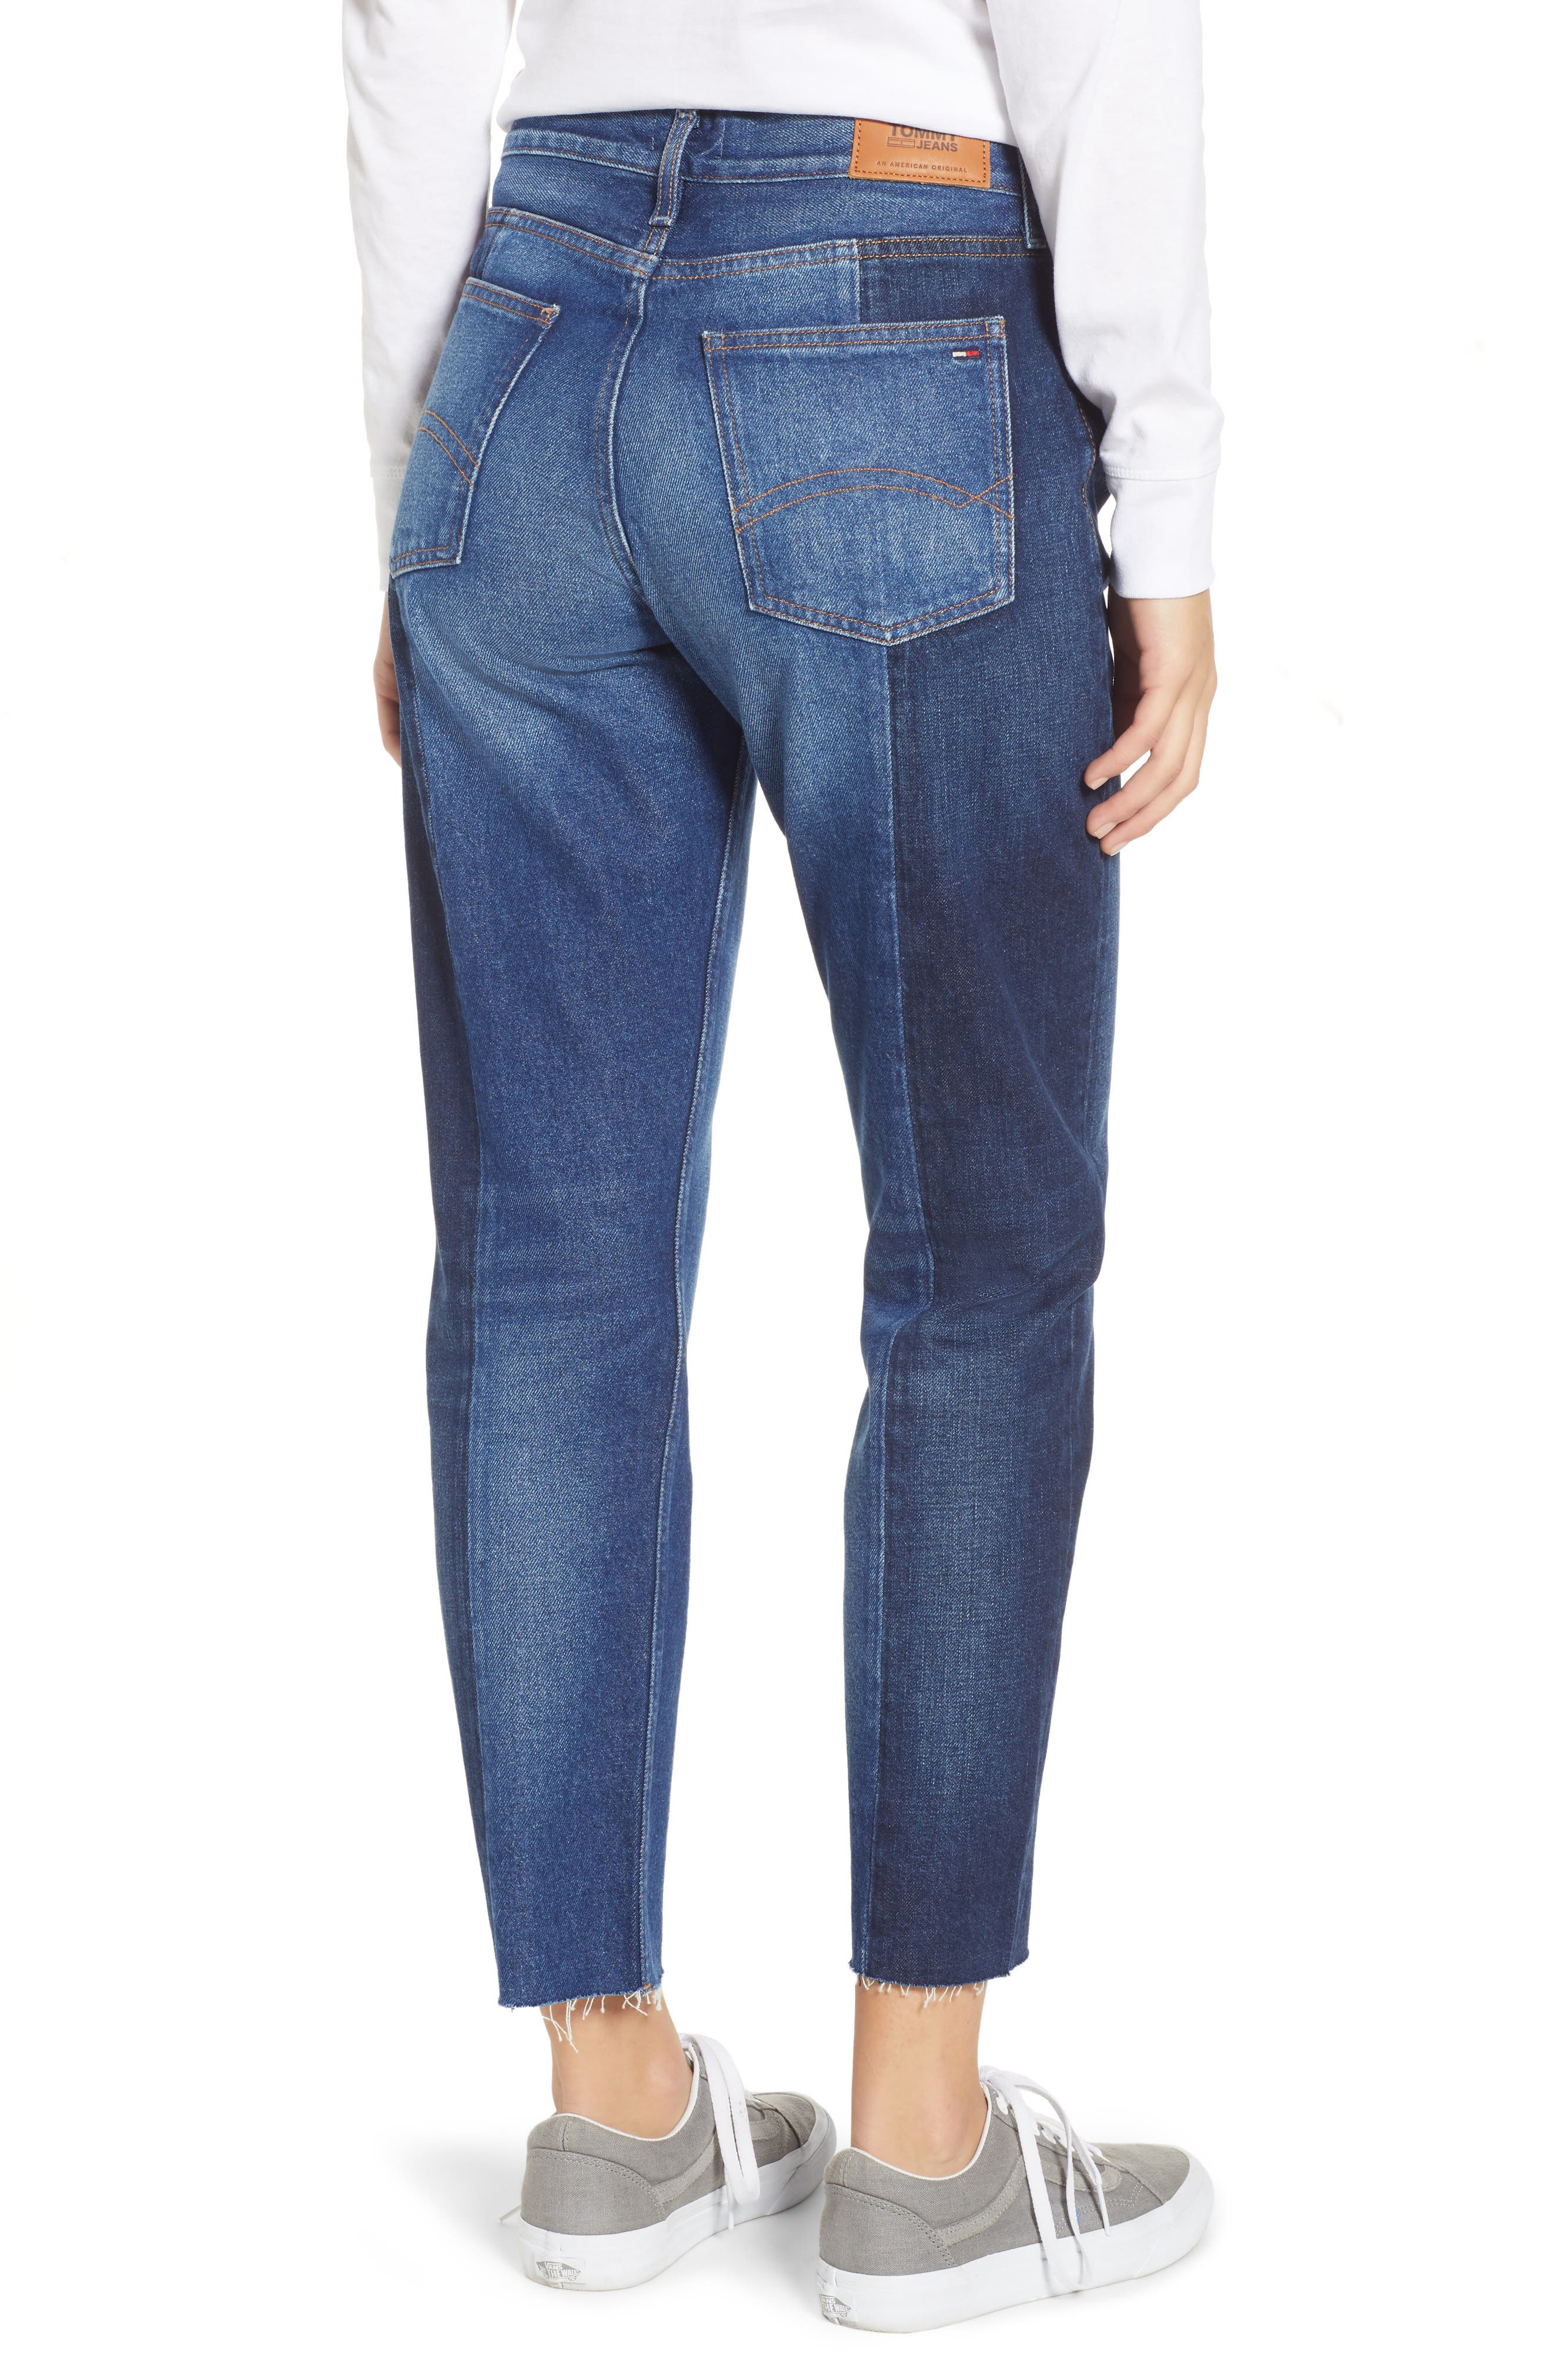 Izzy Paneled Slim Ankle Jeans,                             Alternate thumbnail 2, color,                             TOMMY JEAN NEW COMBO